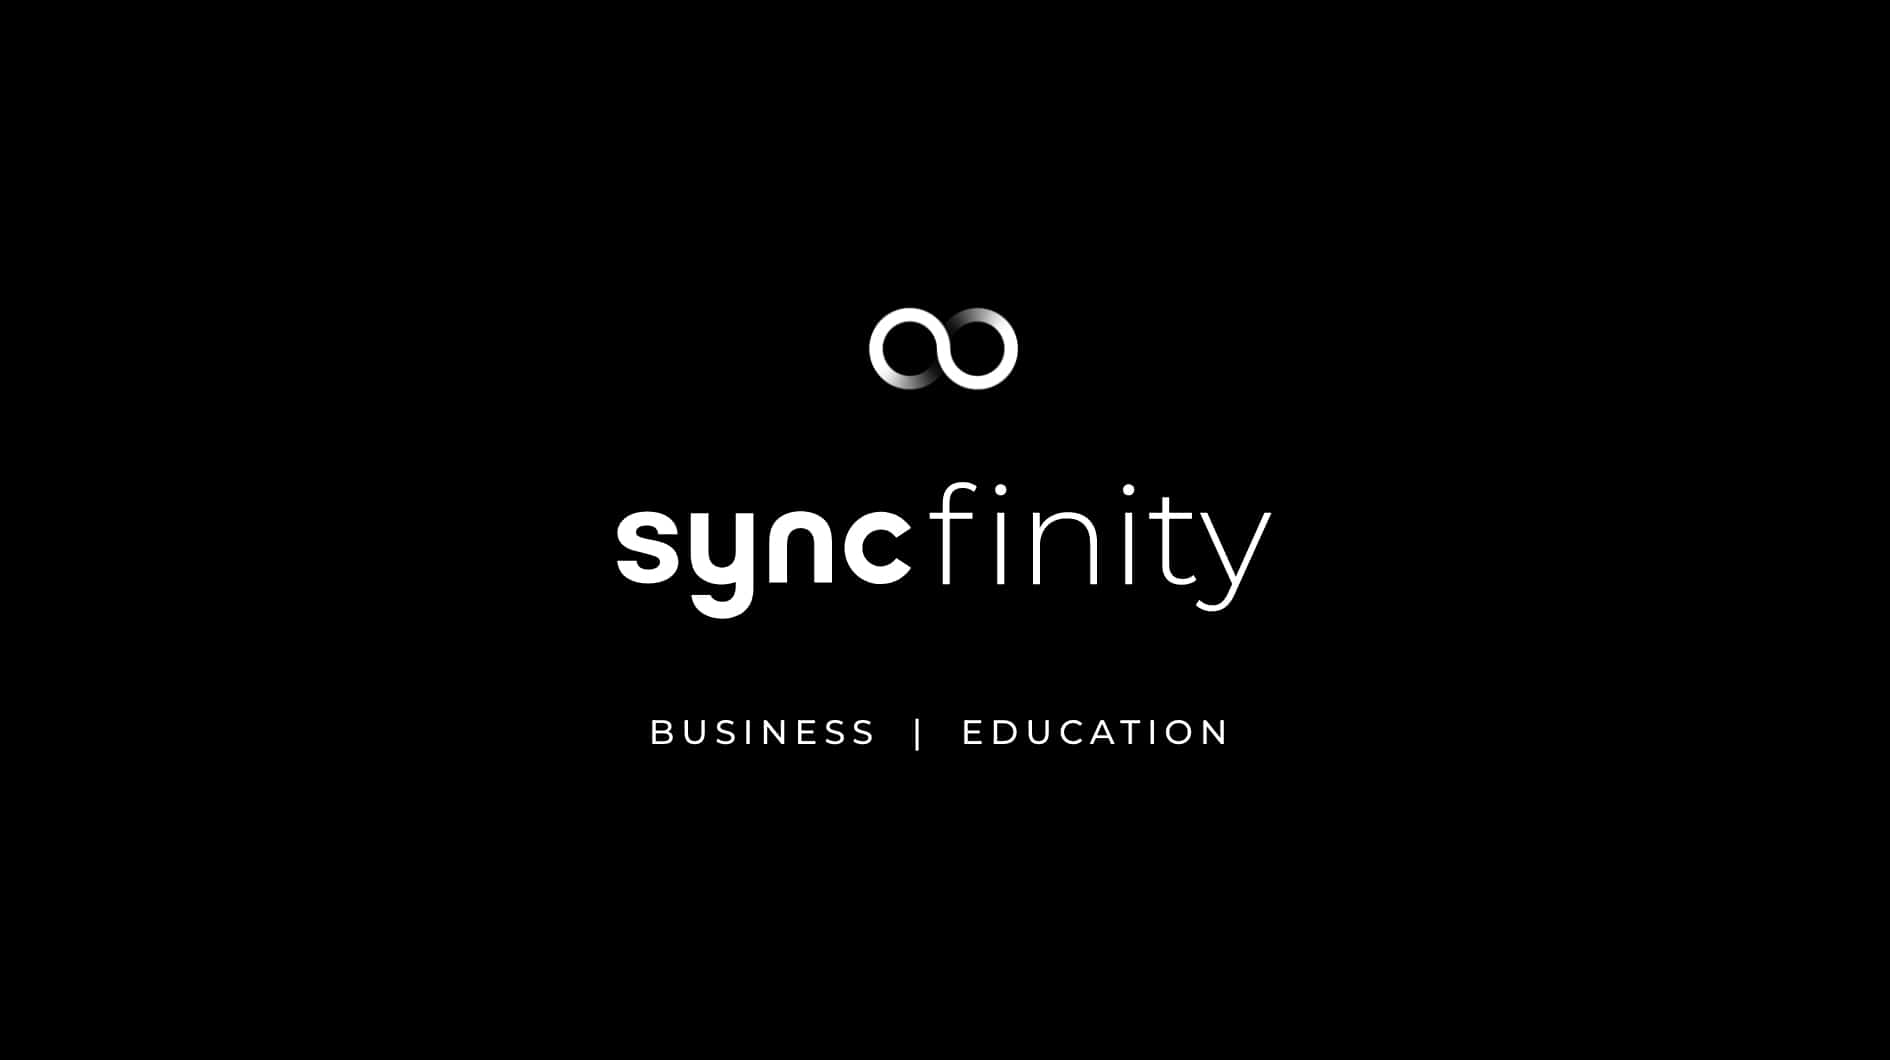 Syncfinity